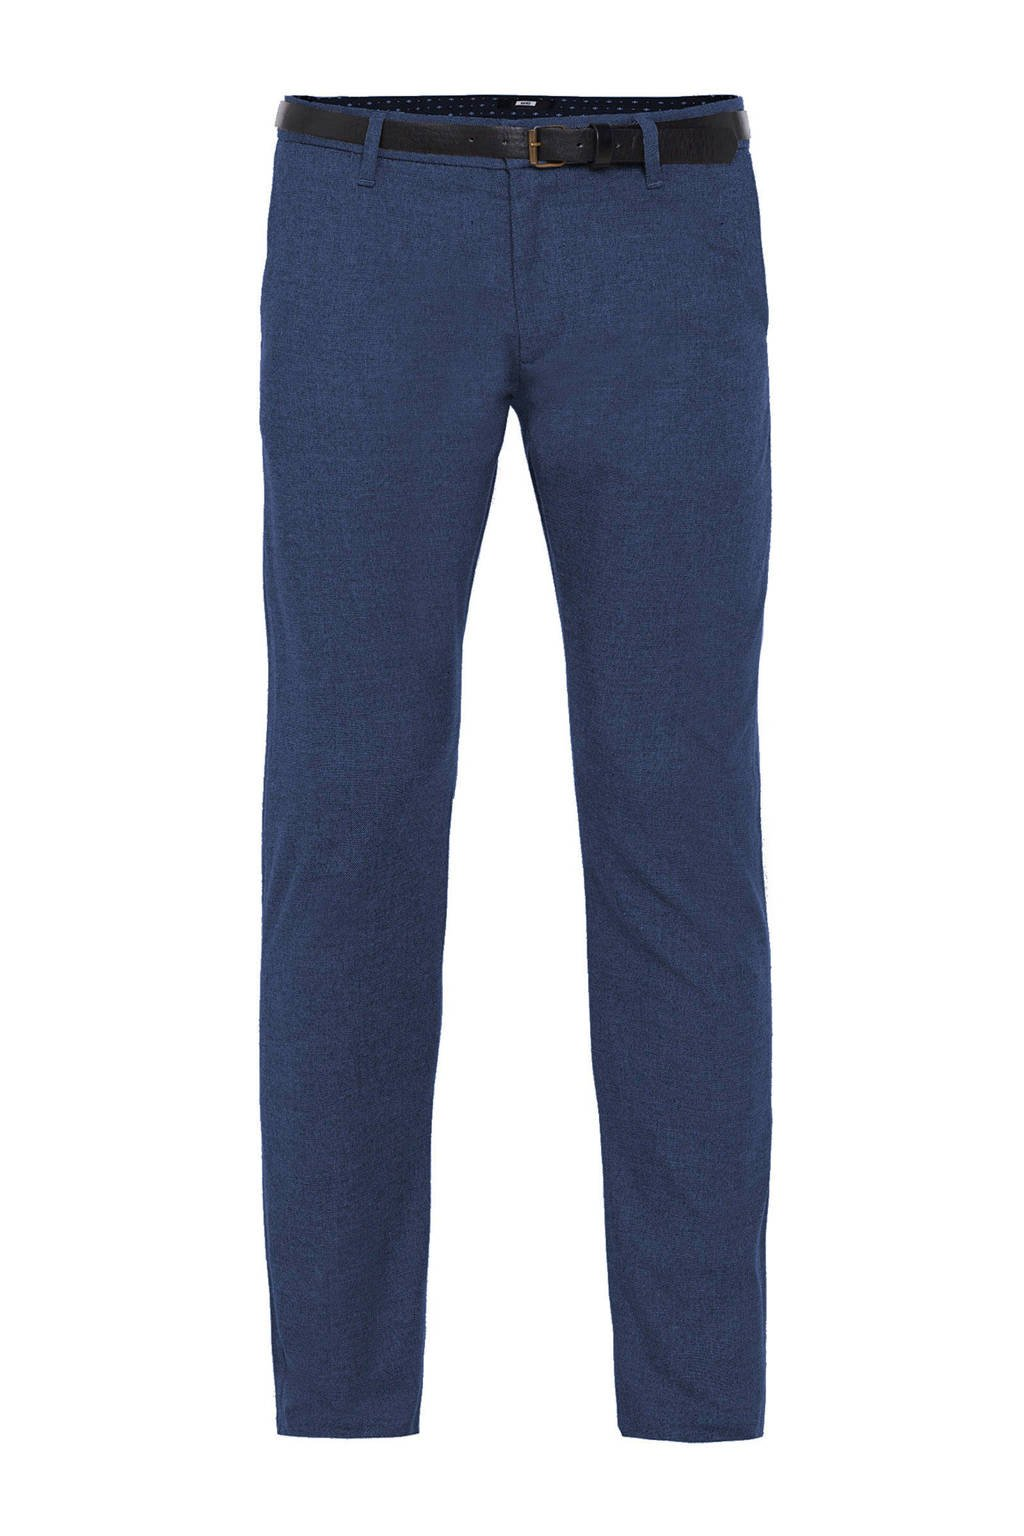 WE Fashion chino donkerblauw, Royal Blue Melange